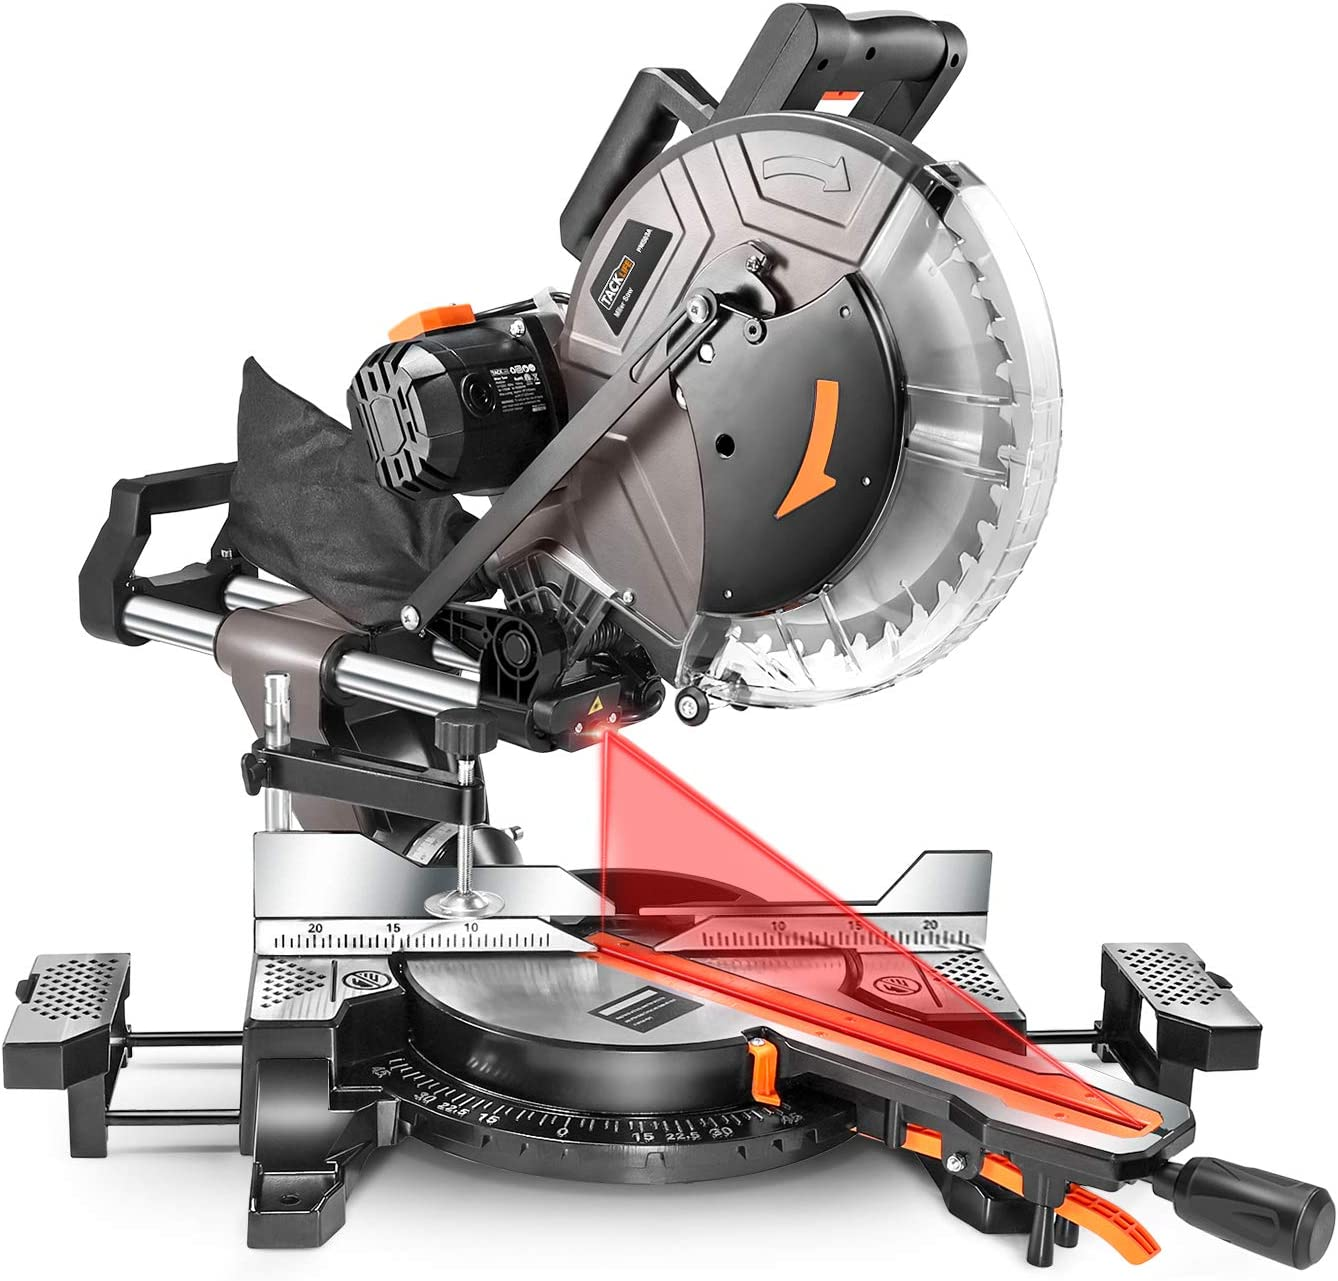 TACKLIFE Sliding Miter Saw, 12inch 15Amp Double-Bevel Compound Miter Saw with Laser, Adjustable Cutting Angle, Extensible Table, 3800rpm, Clamping Device,10ft 3Meters Cable, 40T Blade – PMS03A